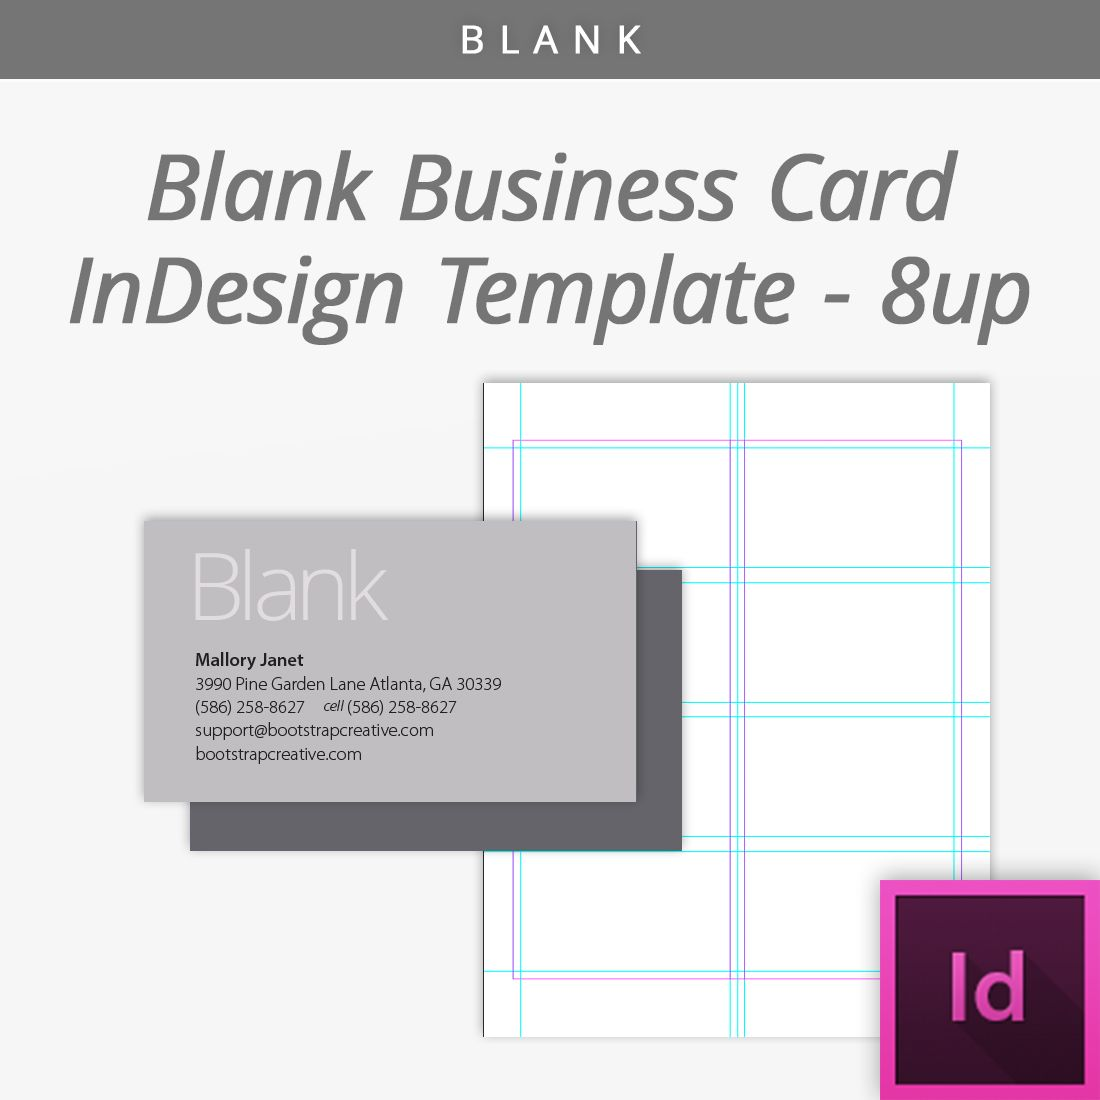 Blank indesign business card template 8 up free download blank indesign business card template 8 up free download designtemplate flashek Images